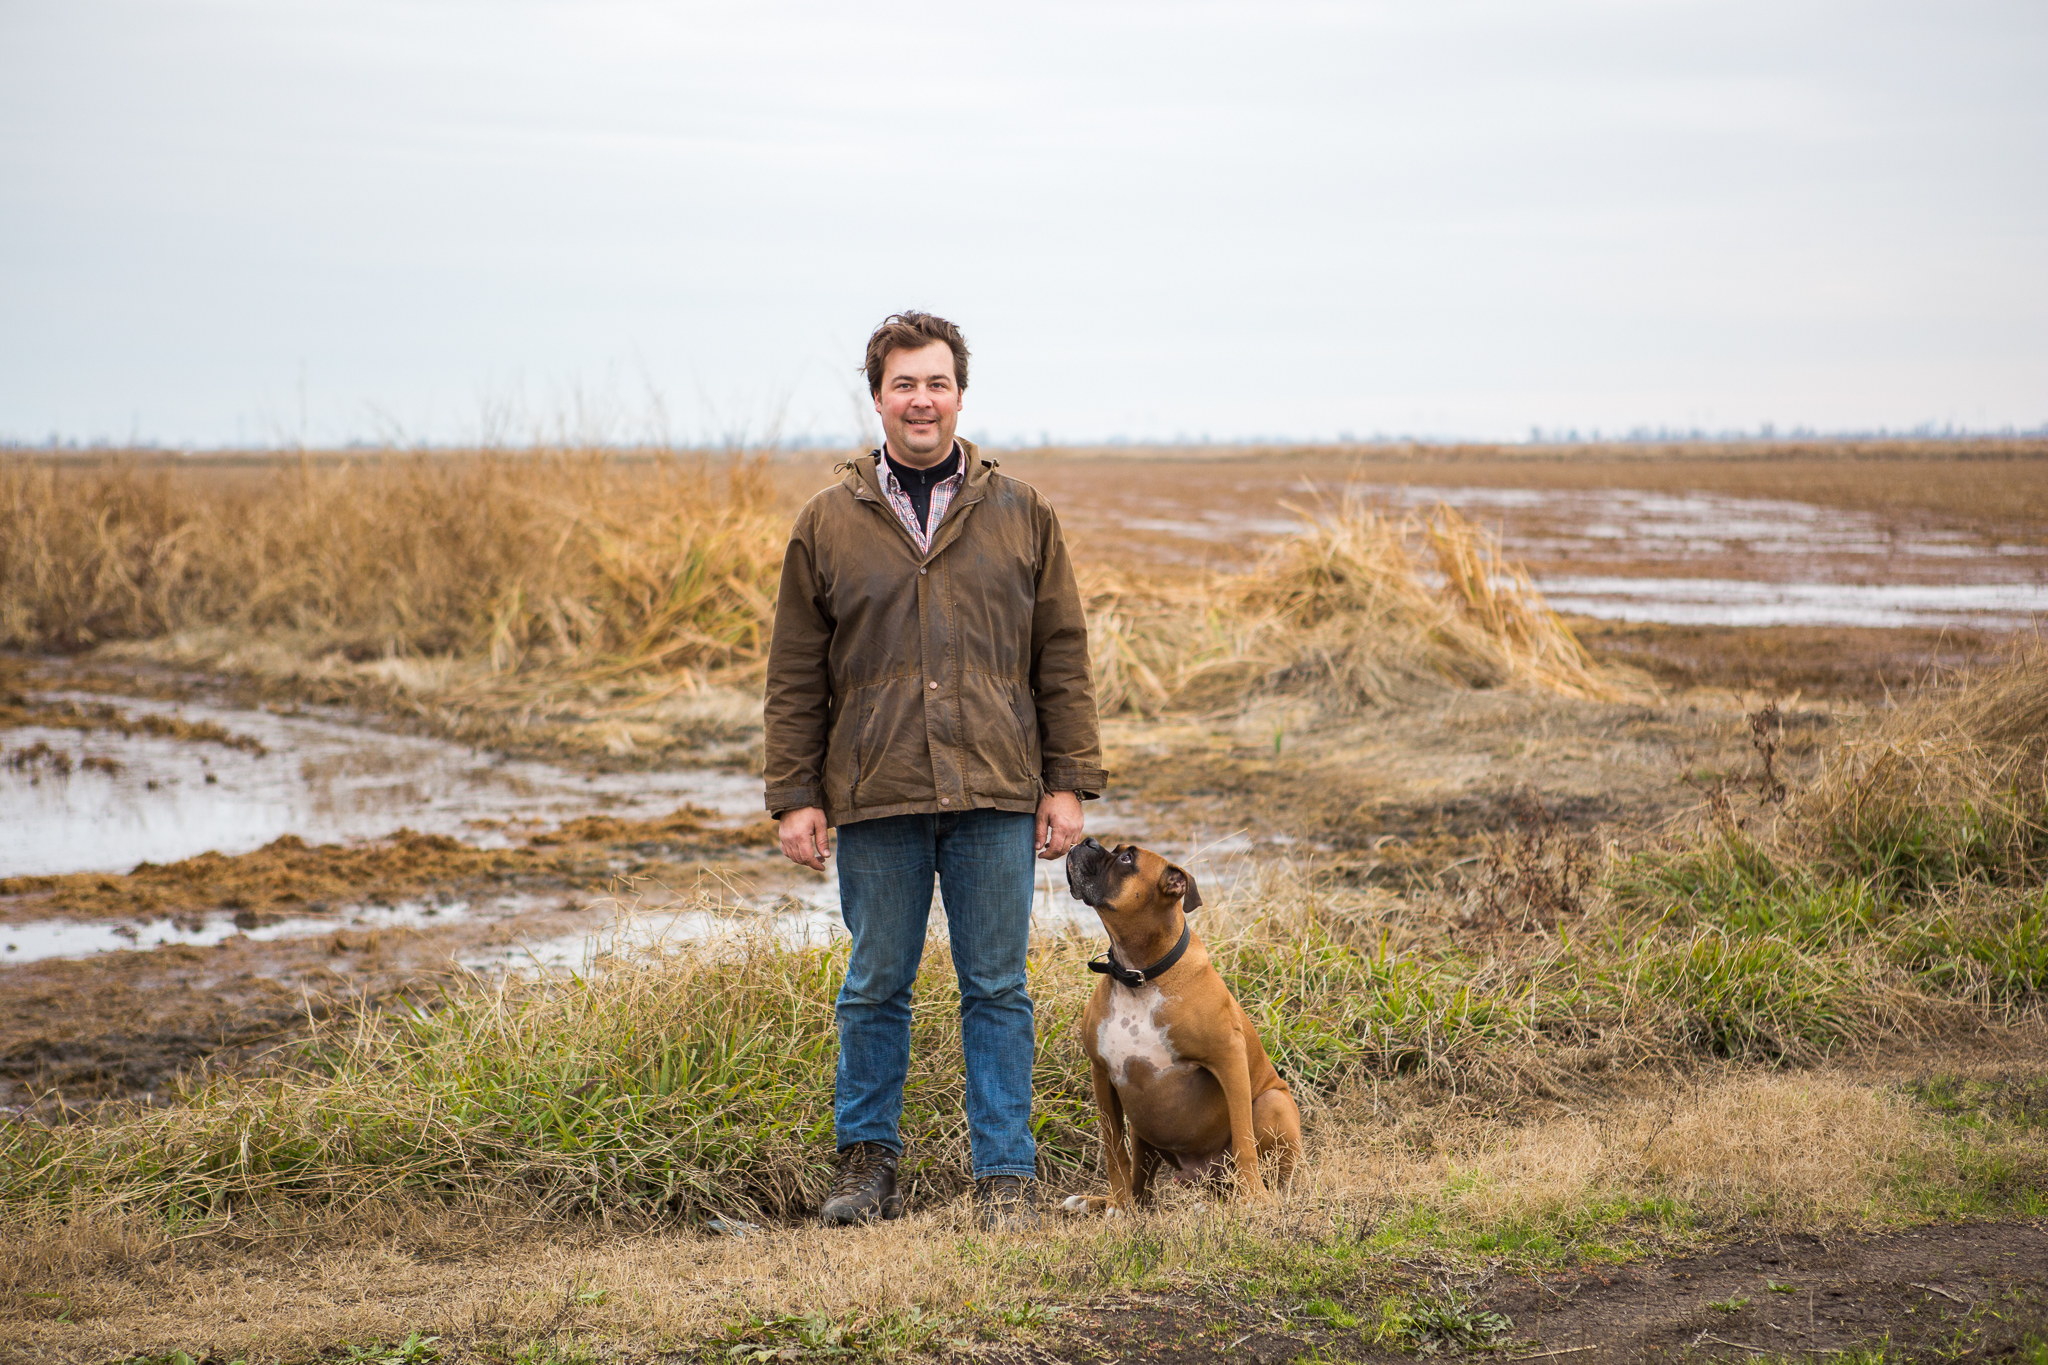 Dan Anderson, a fourth-generation rice farmer, stands next to his search-and-rescue dog, Cooper, in Richvale, California.